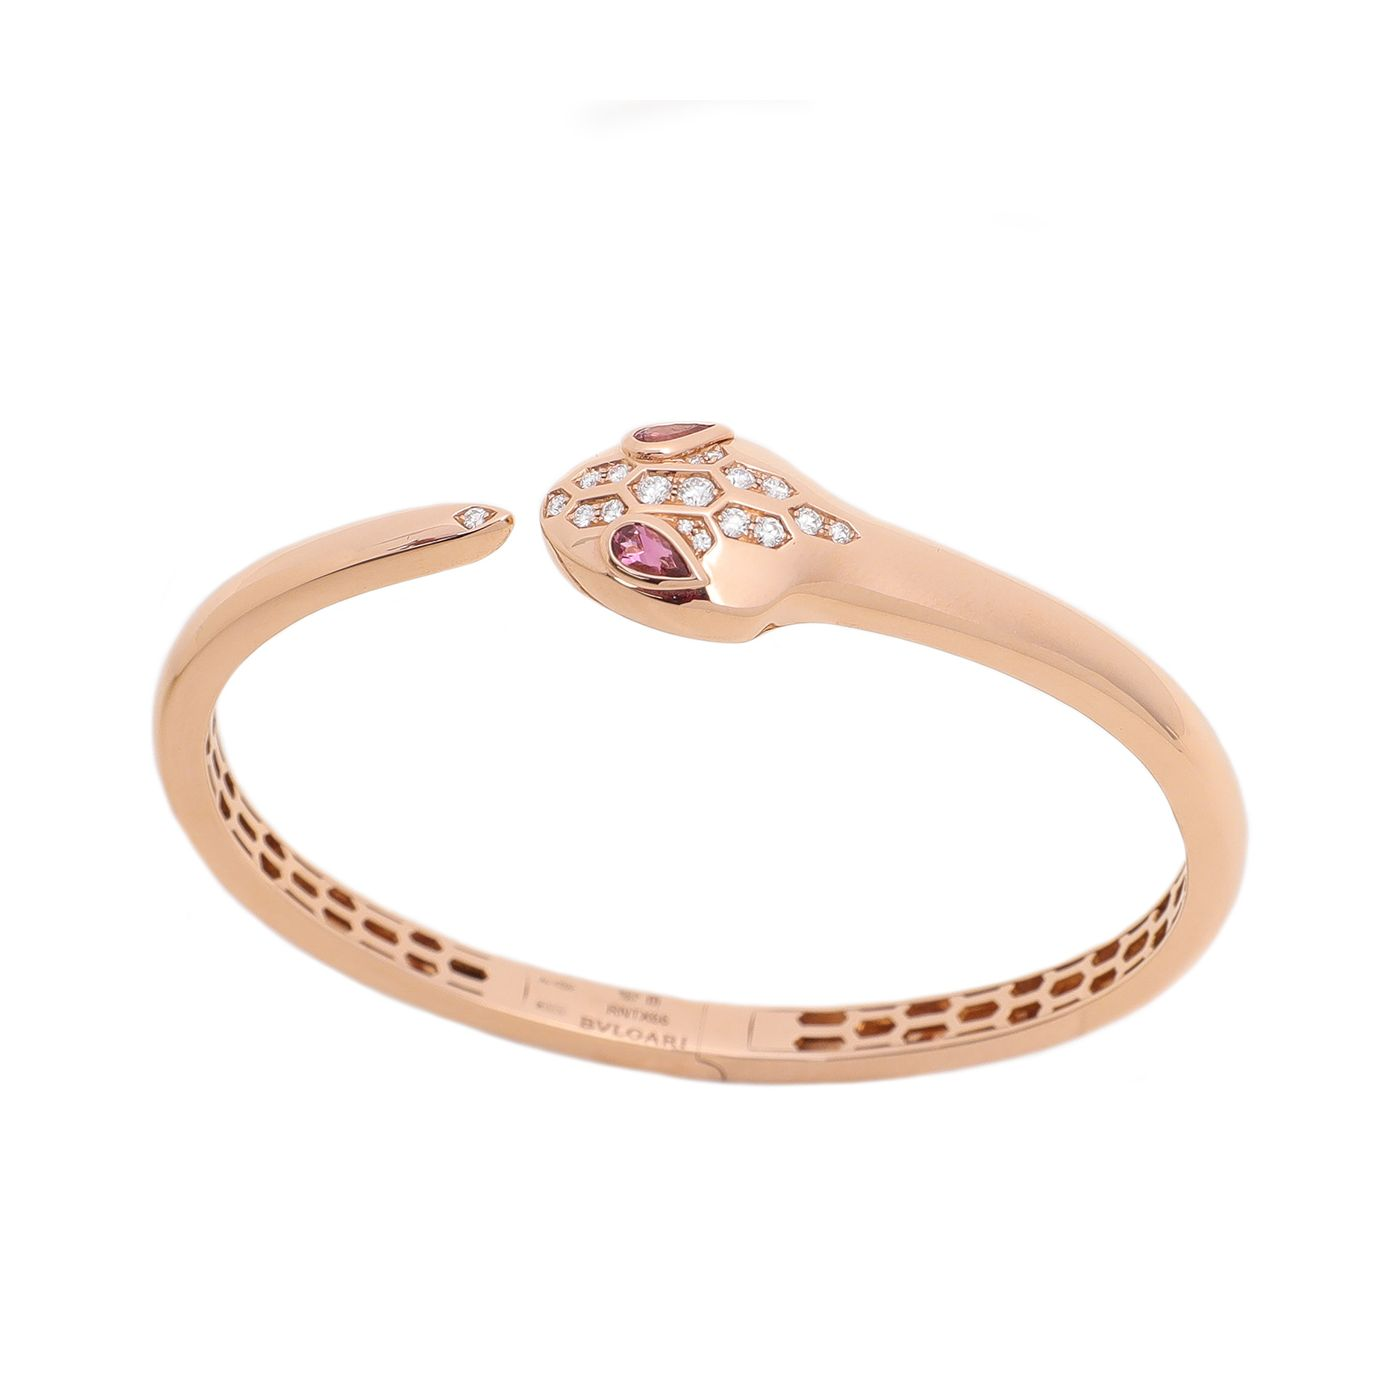 Bvlgari 18K Rose Gold Serpenti Rubellite Eyes Diamond Bracelet Medium